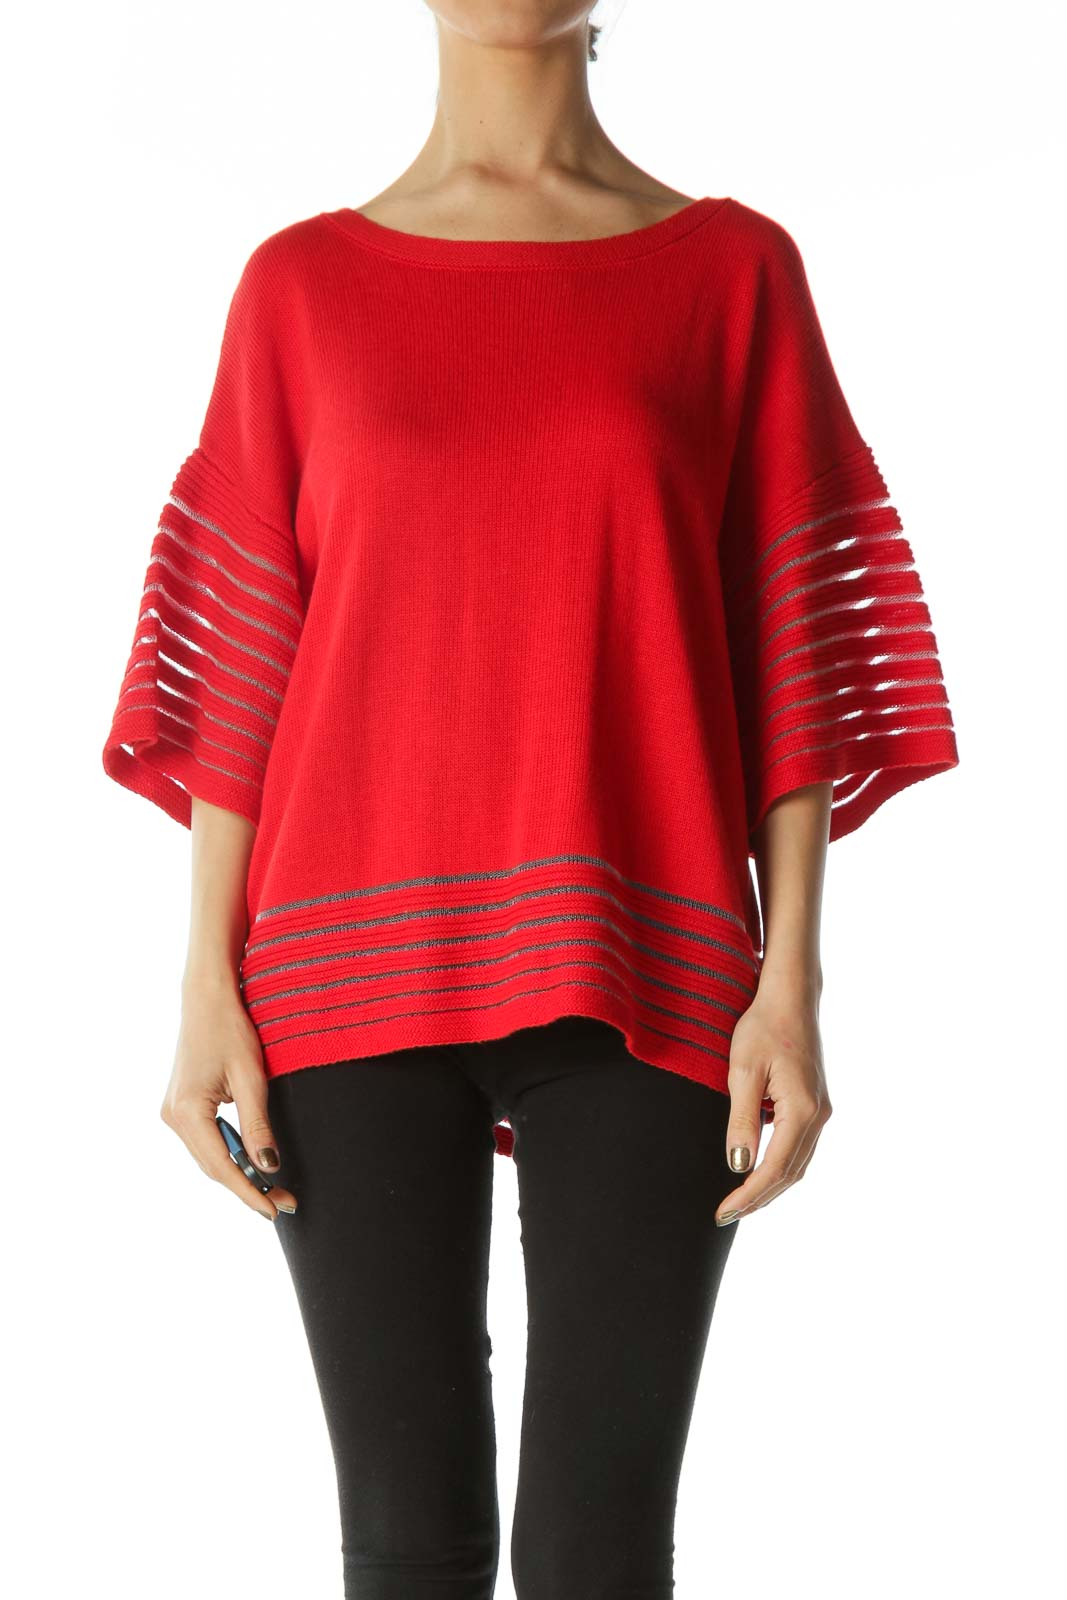 Bright Red Over-Sized Short-Sleeve Knit With Lace Contrast on Hem